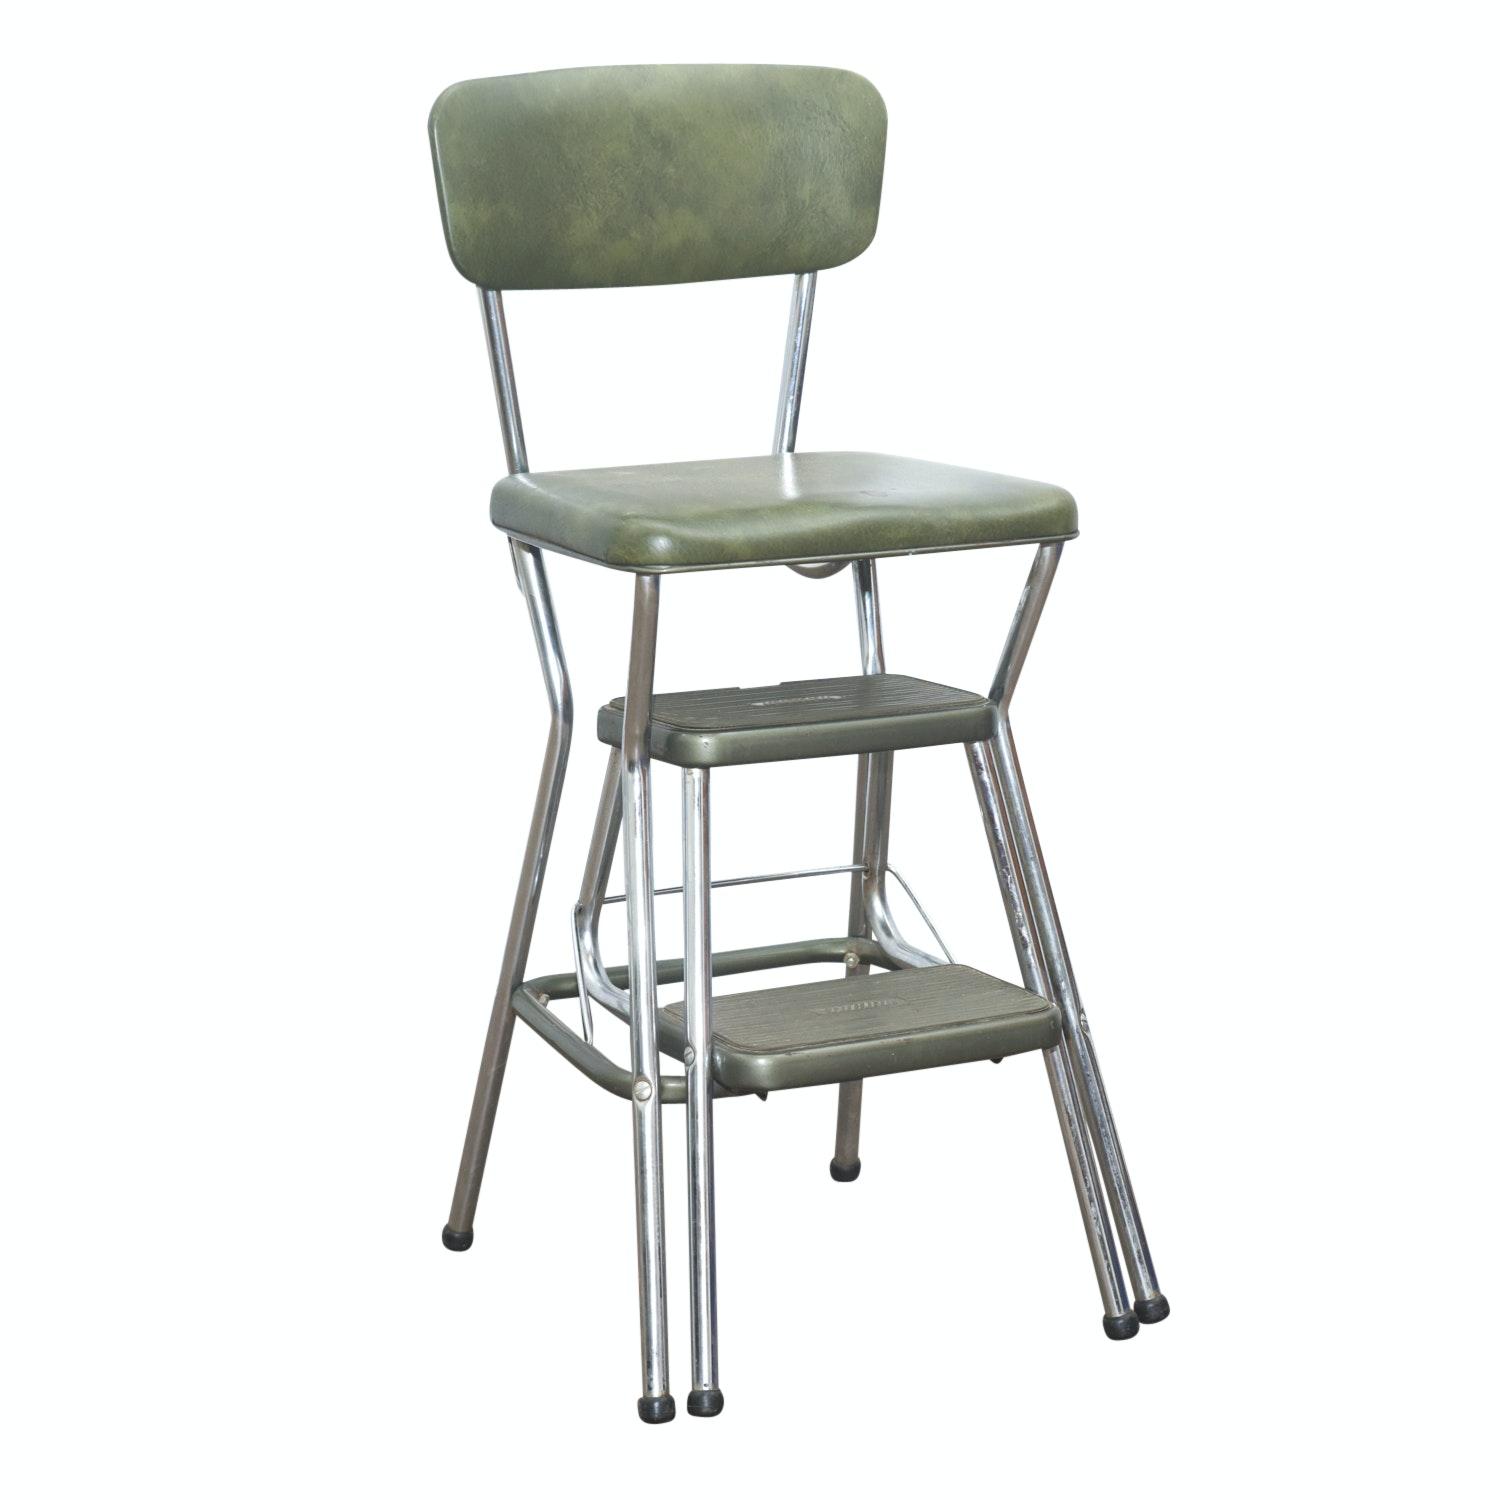 Vintage Step Stool Chair by Cosco